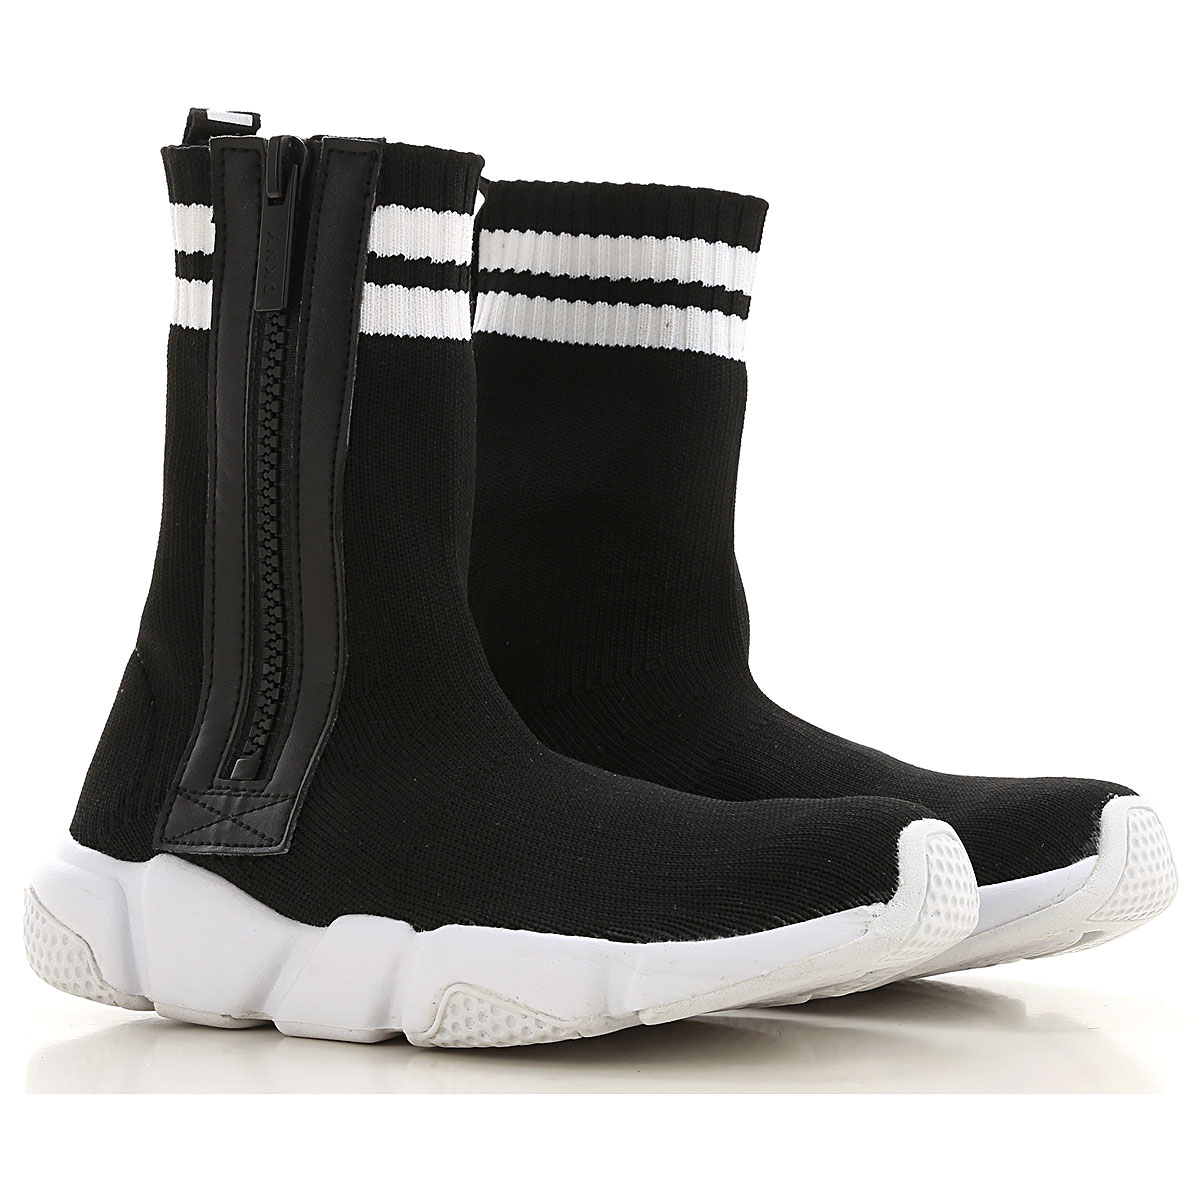 DKNY Kids Shoes for Boys On Sale, Blac, Fabric, 2019, 27 28 29 30 31 32 33 34 35